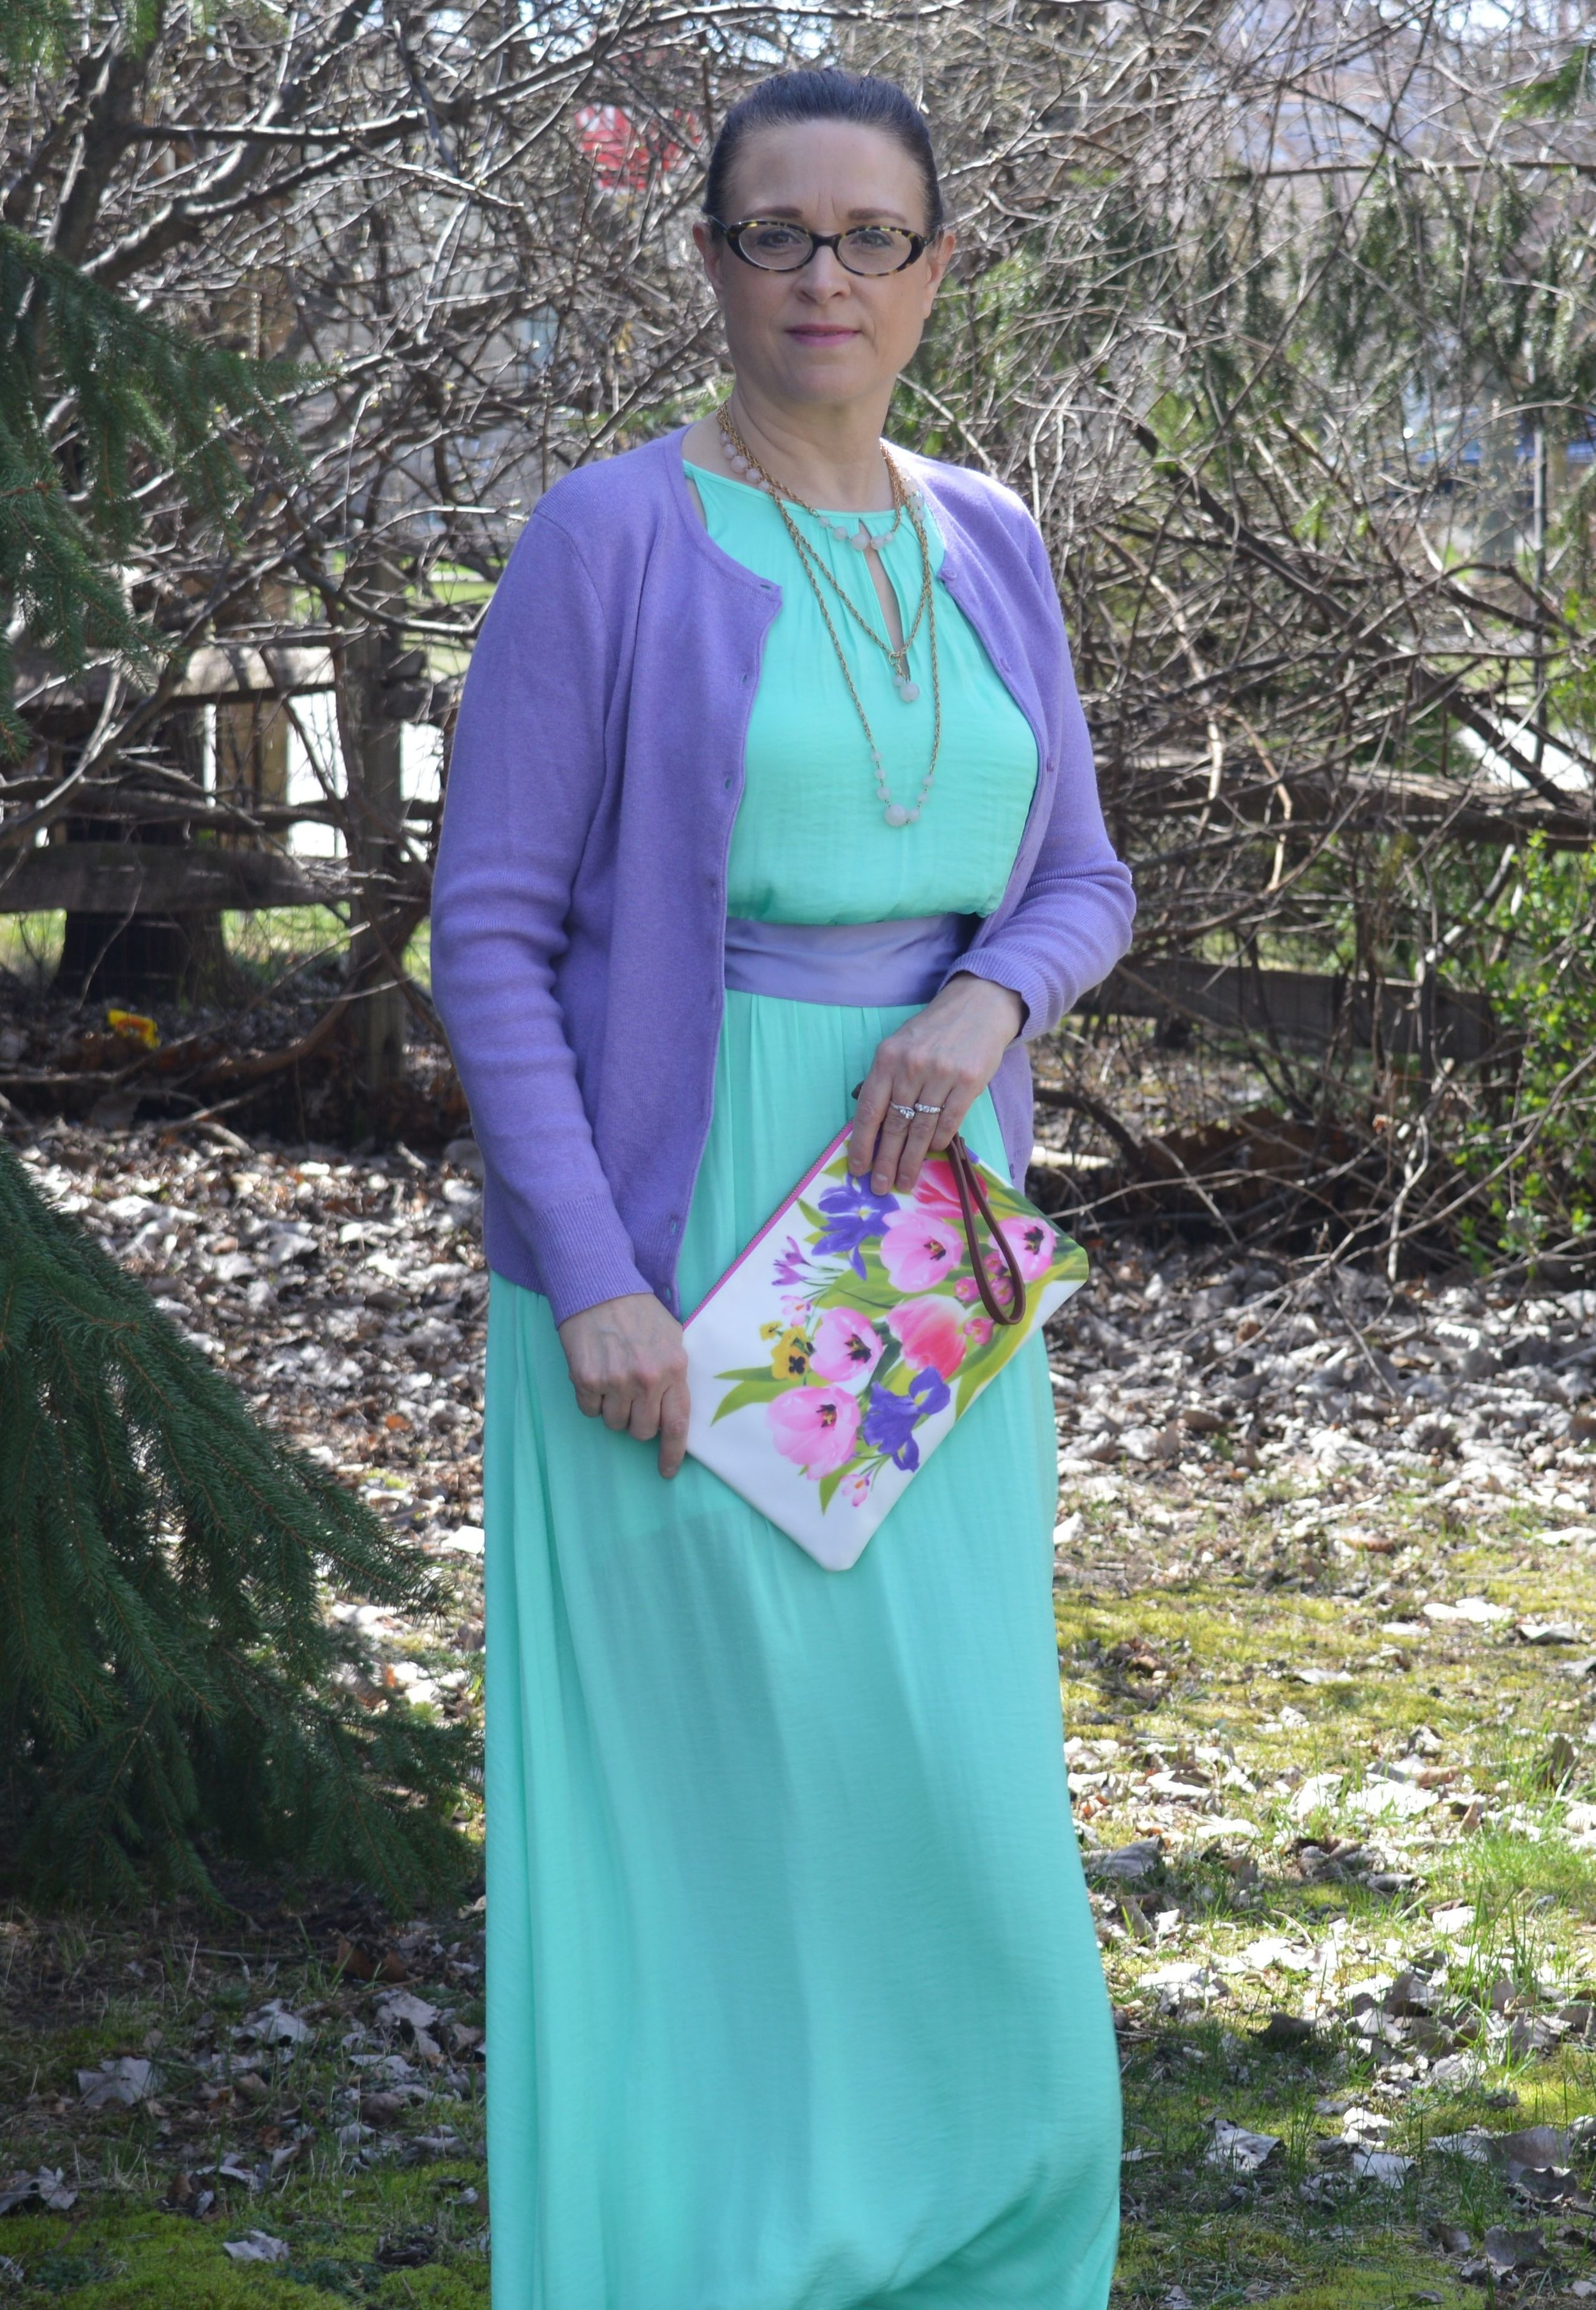 floral bag, easter outfit